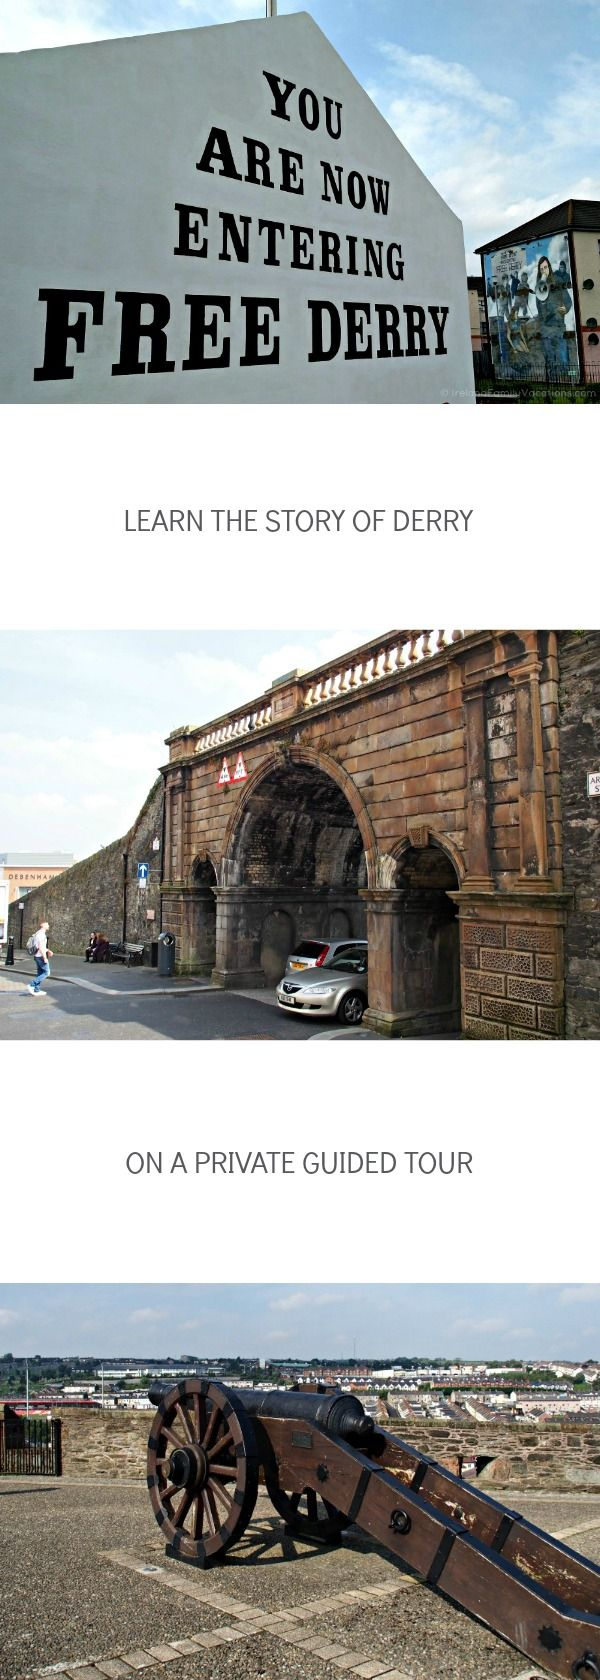 A Guided Tour of Derry, Northern Ireland